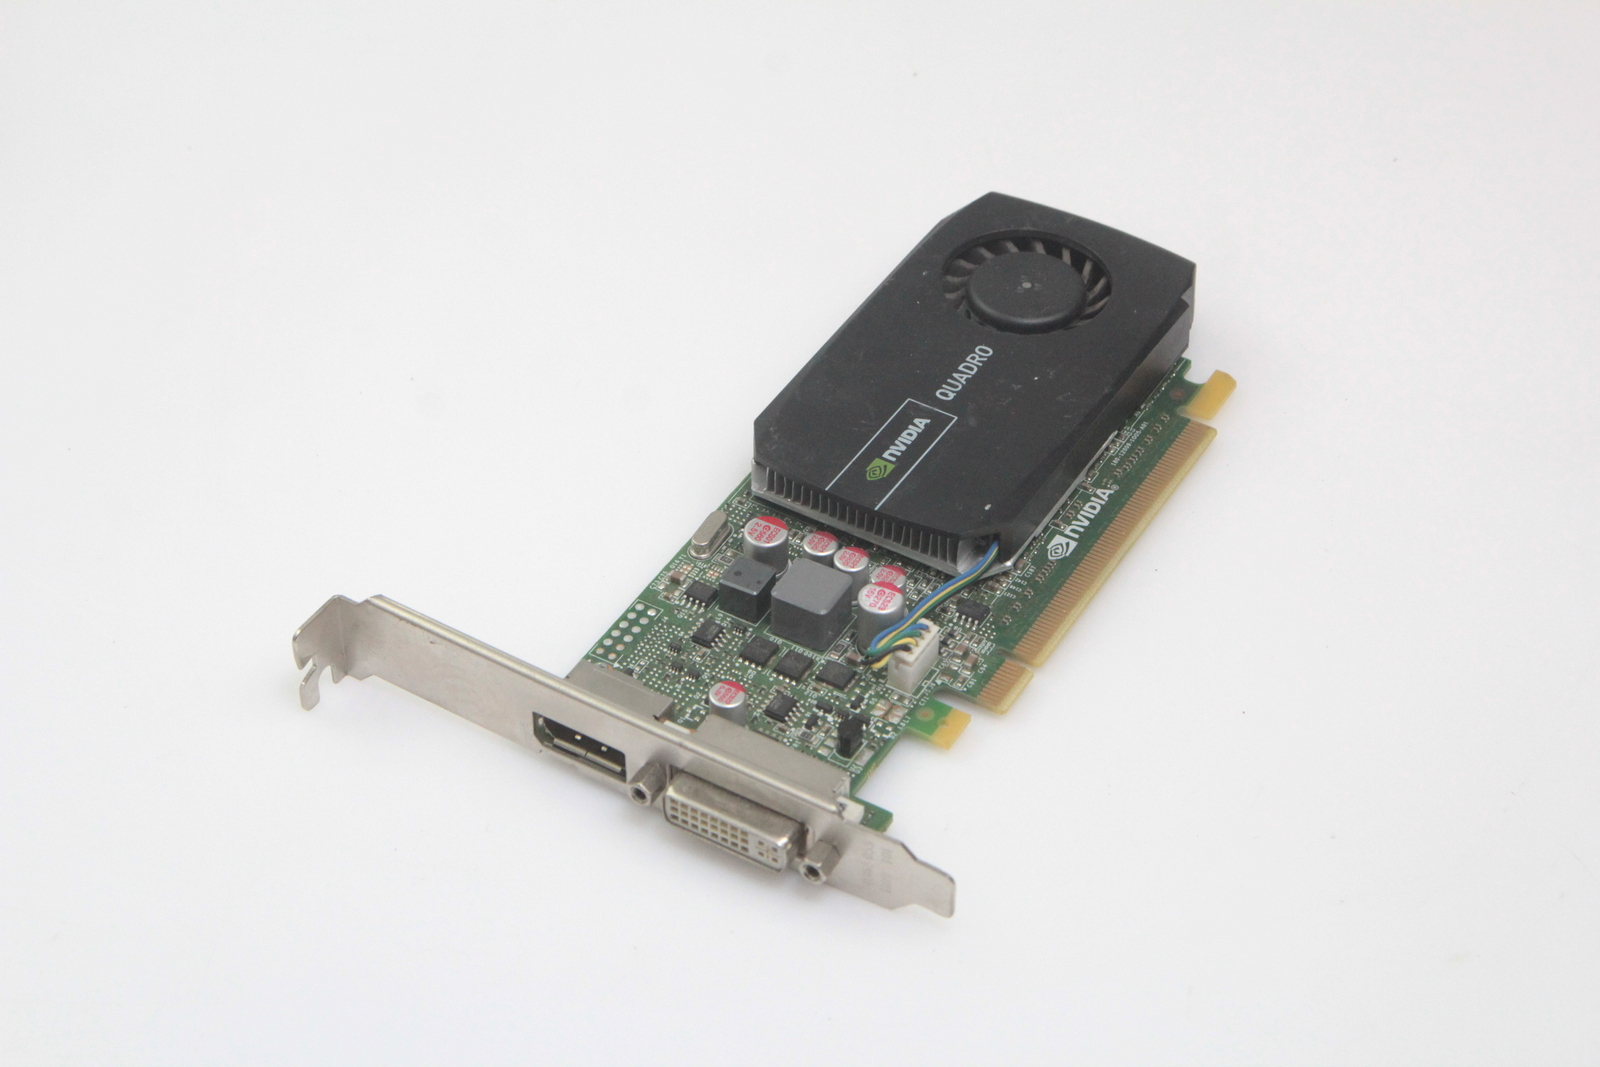 31b31e6719 Details about HP NVIDIA Quadro 600 1GB DDR3 PCI-E Video Card 671135-001  612951-002